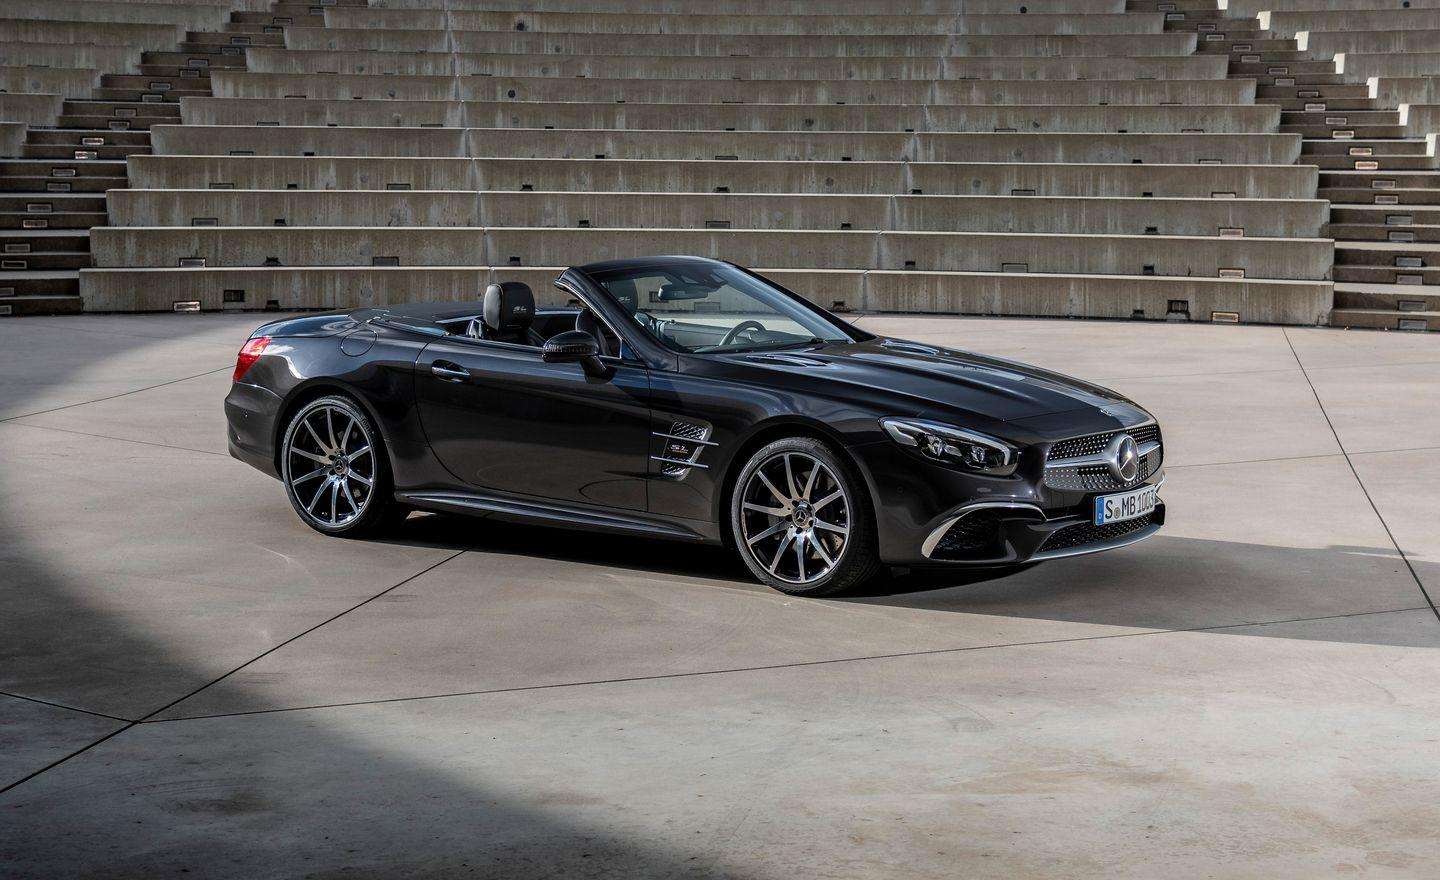 """<p>In the 65 years since Mercedes introduced the first roadgoing <a href=""""https://www.caranddriver.com/mercedes-benz/sl-class"""" rel=""""nofollow noopener"""" target=""""_blank"""" data-ylk=""""slk:SL"""" class=""""link rapid-noclick-resp"""">SL</a>, there have been just six generations of the flagship two-seater. For 2020, Mercedes will send off that sixth R231 model with a special color scheme and call it the Grand Edition.</p>"""